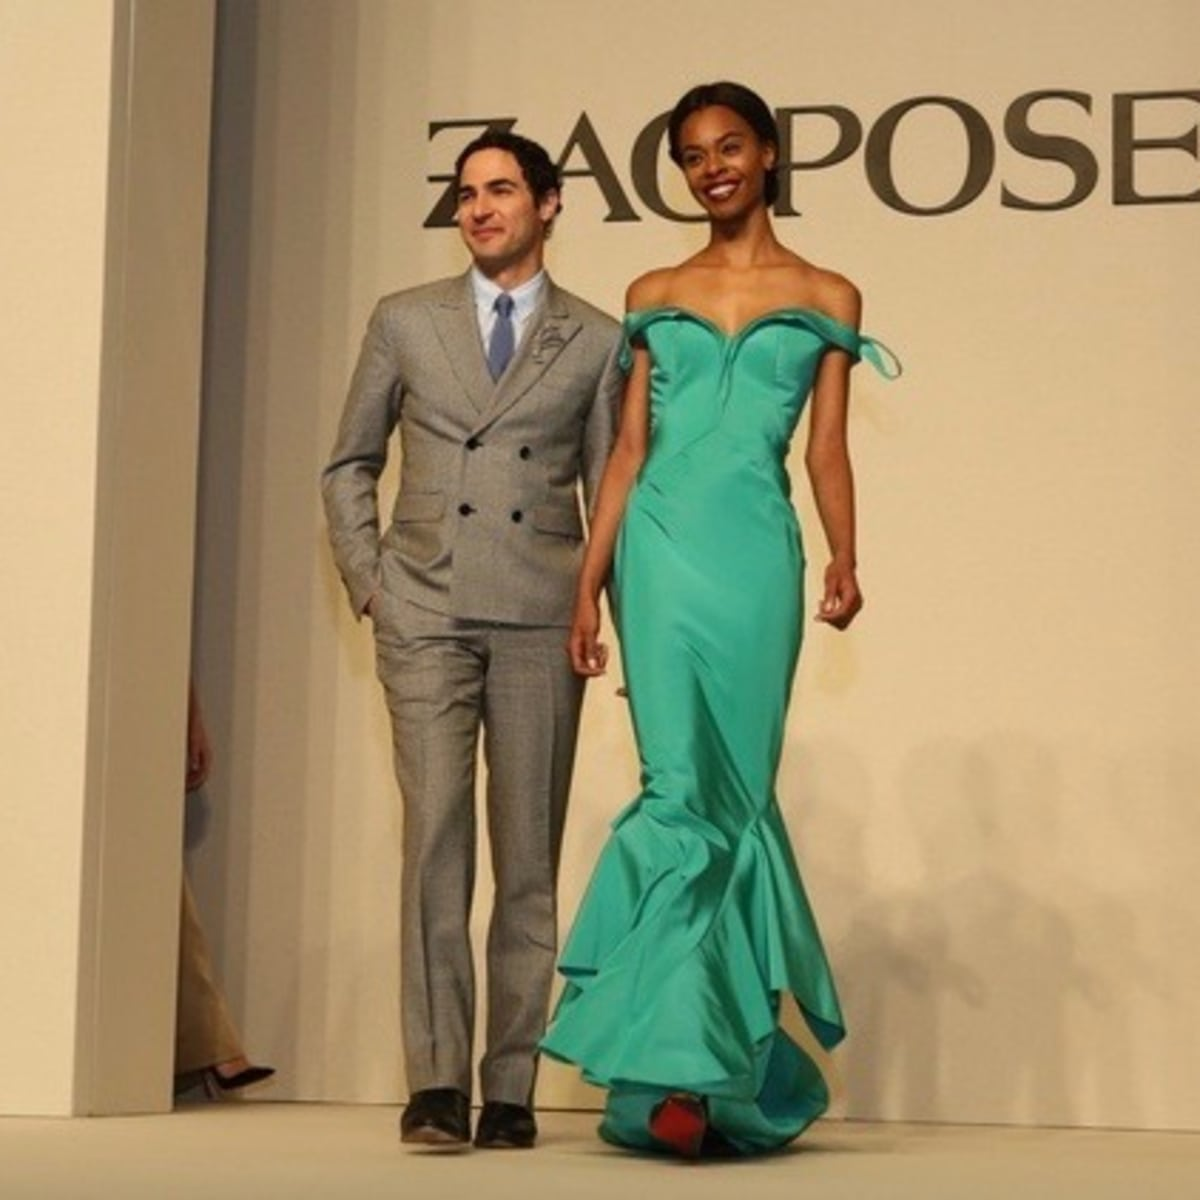 Best Dressed luncheon, March 2016, Zac Posen and gowns